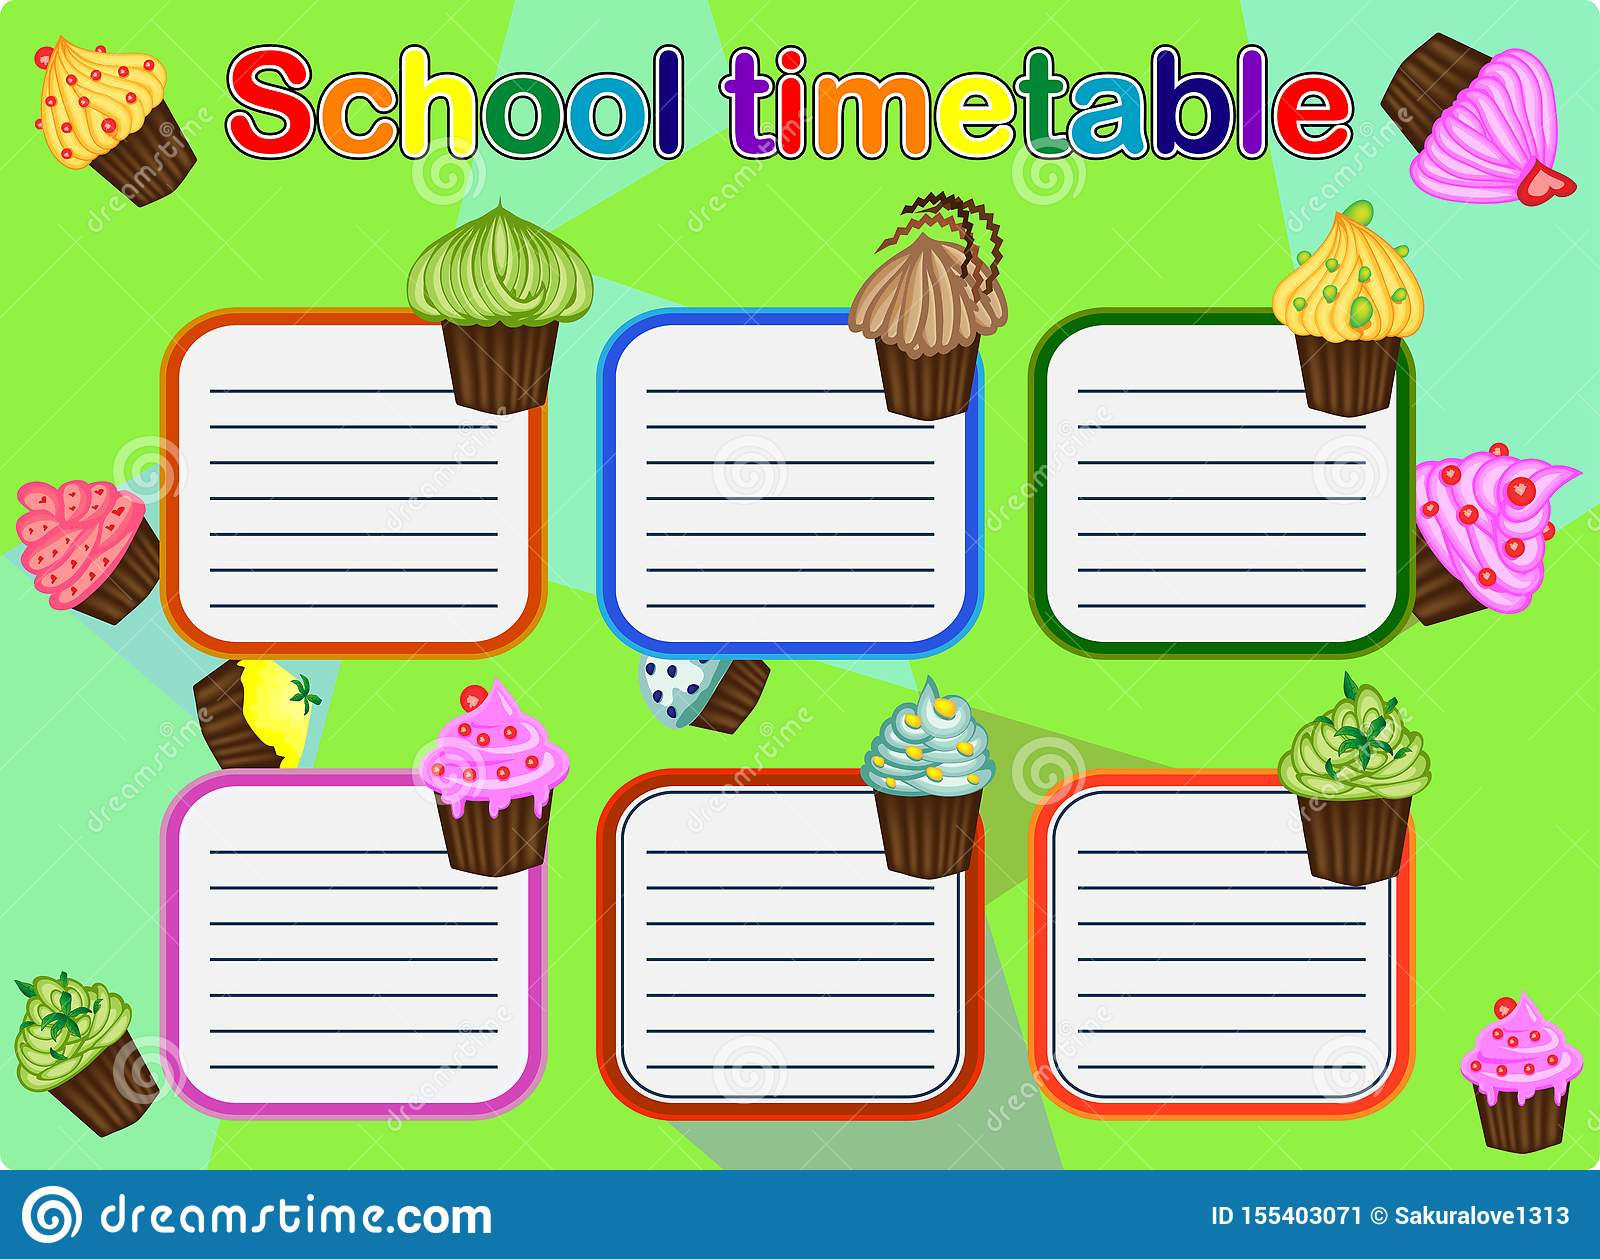 School Timetable, a weekly curriculum design template, scalable graphic with watercolor butterflies